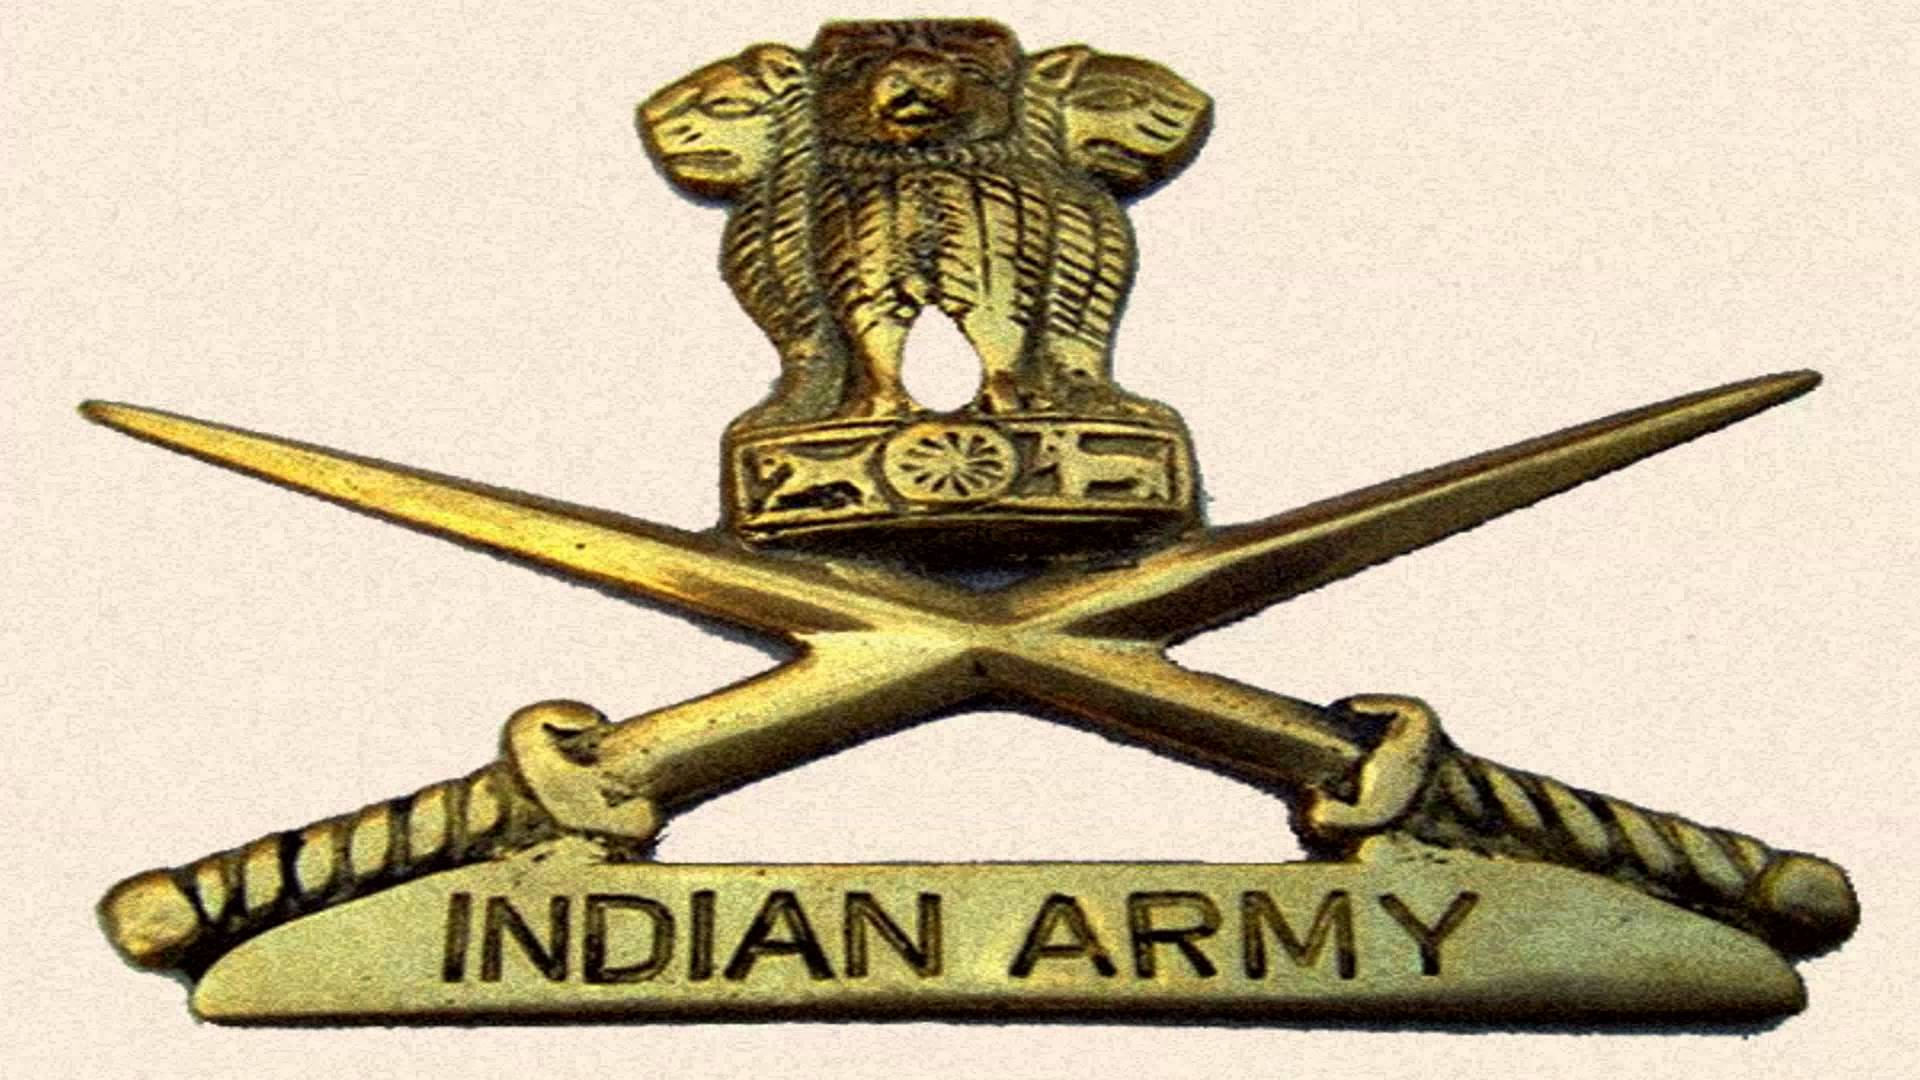 Indian army logo wallpapers wallpaper cave - Army wallpaper hd 1080p ...